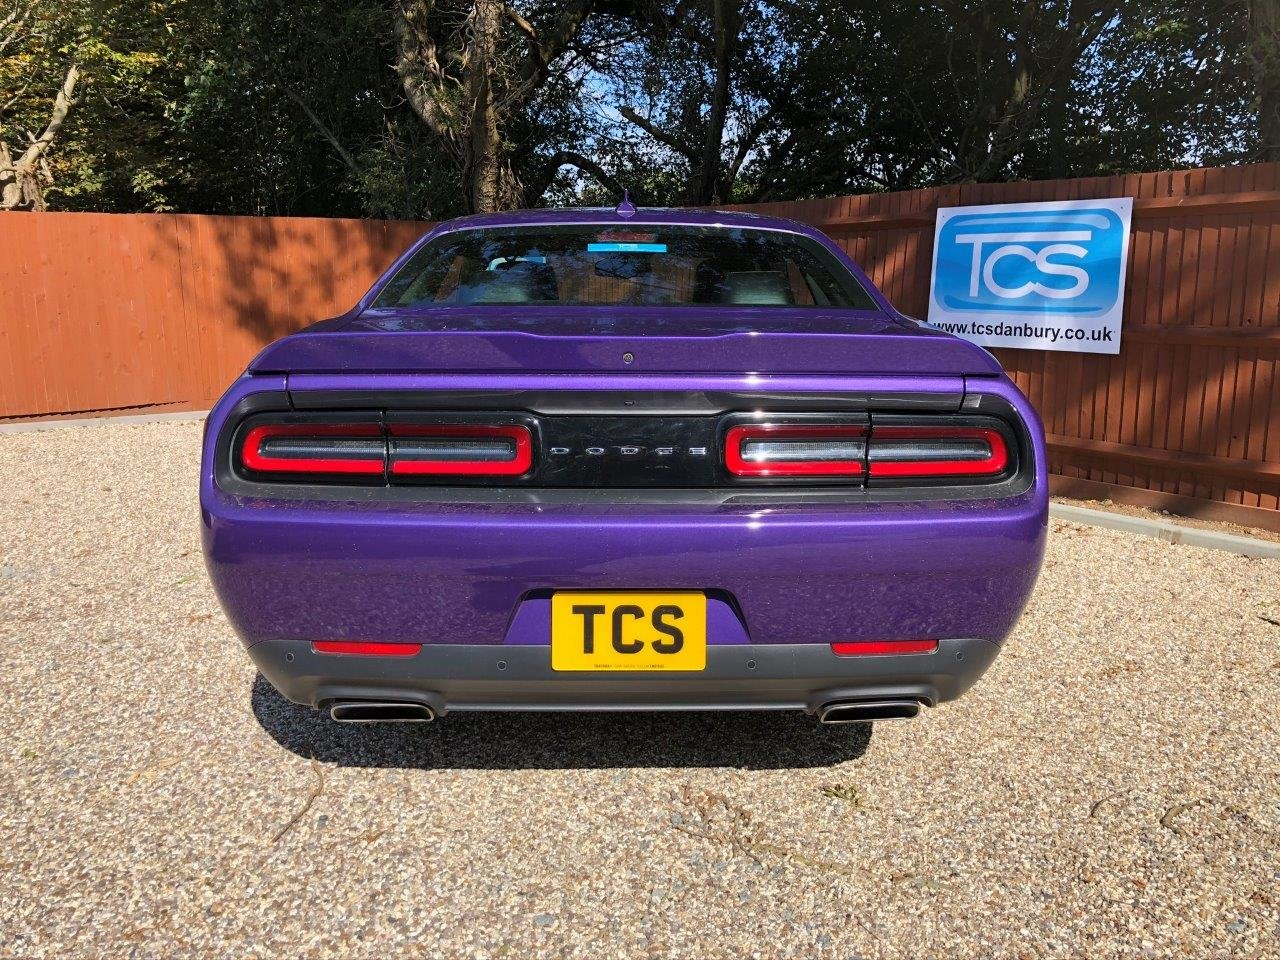 2016 Challenger R/T HEMI V8 in Plumb Crazy Purple For Sale (picture 4 of 6)